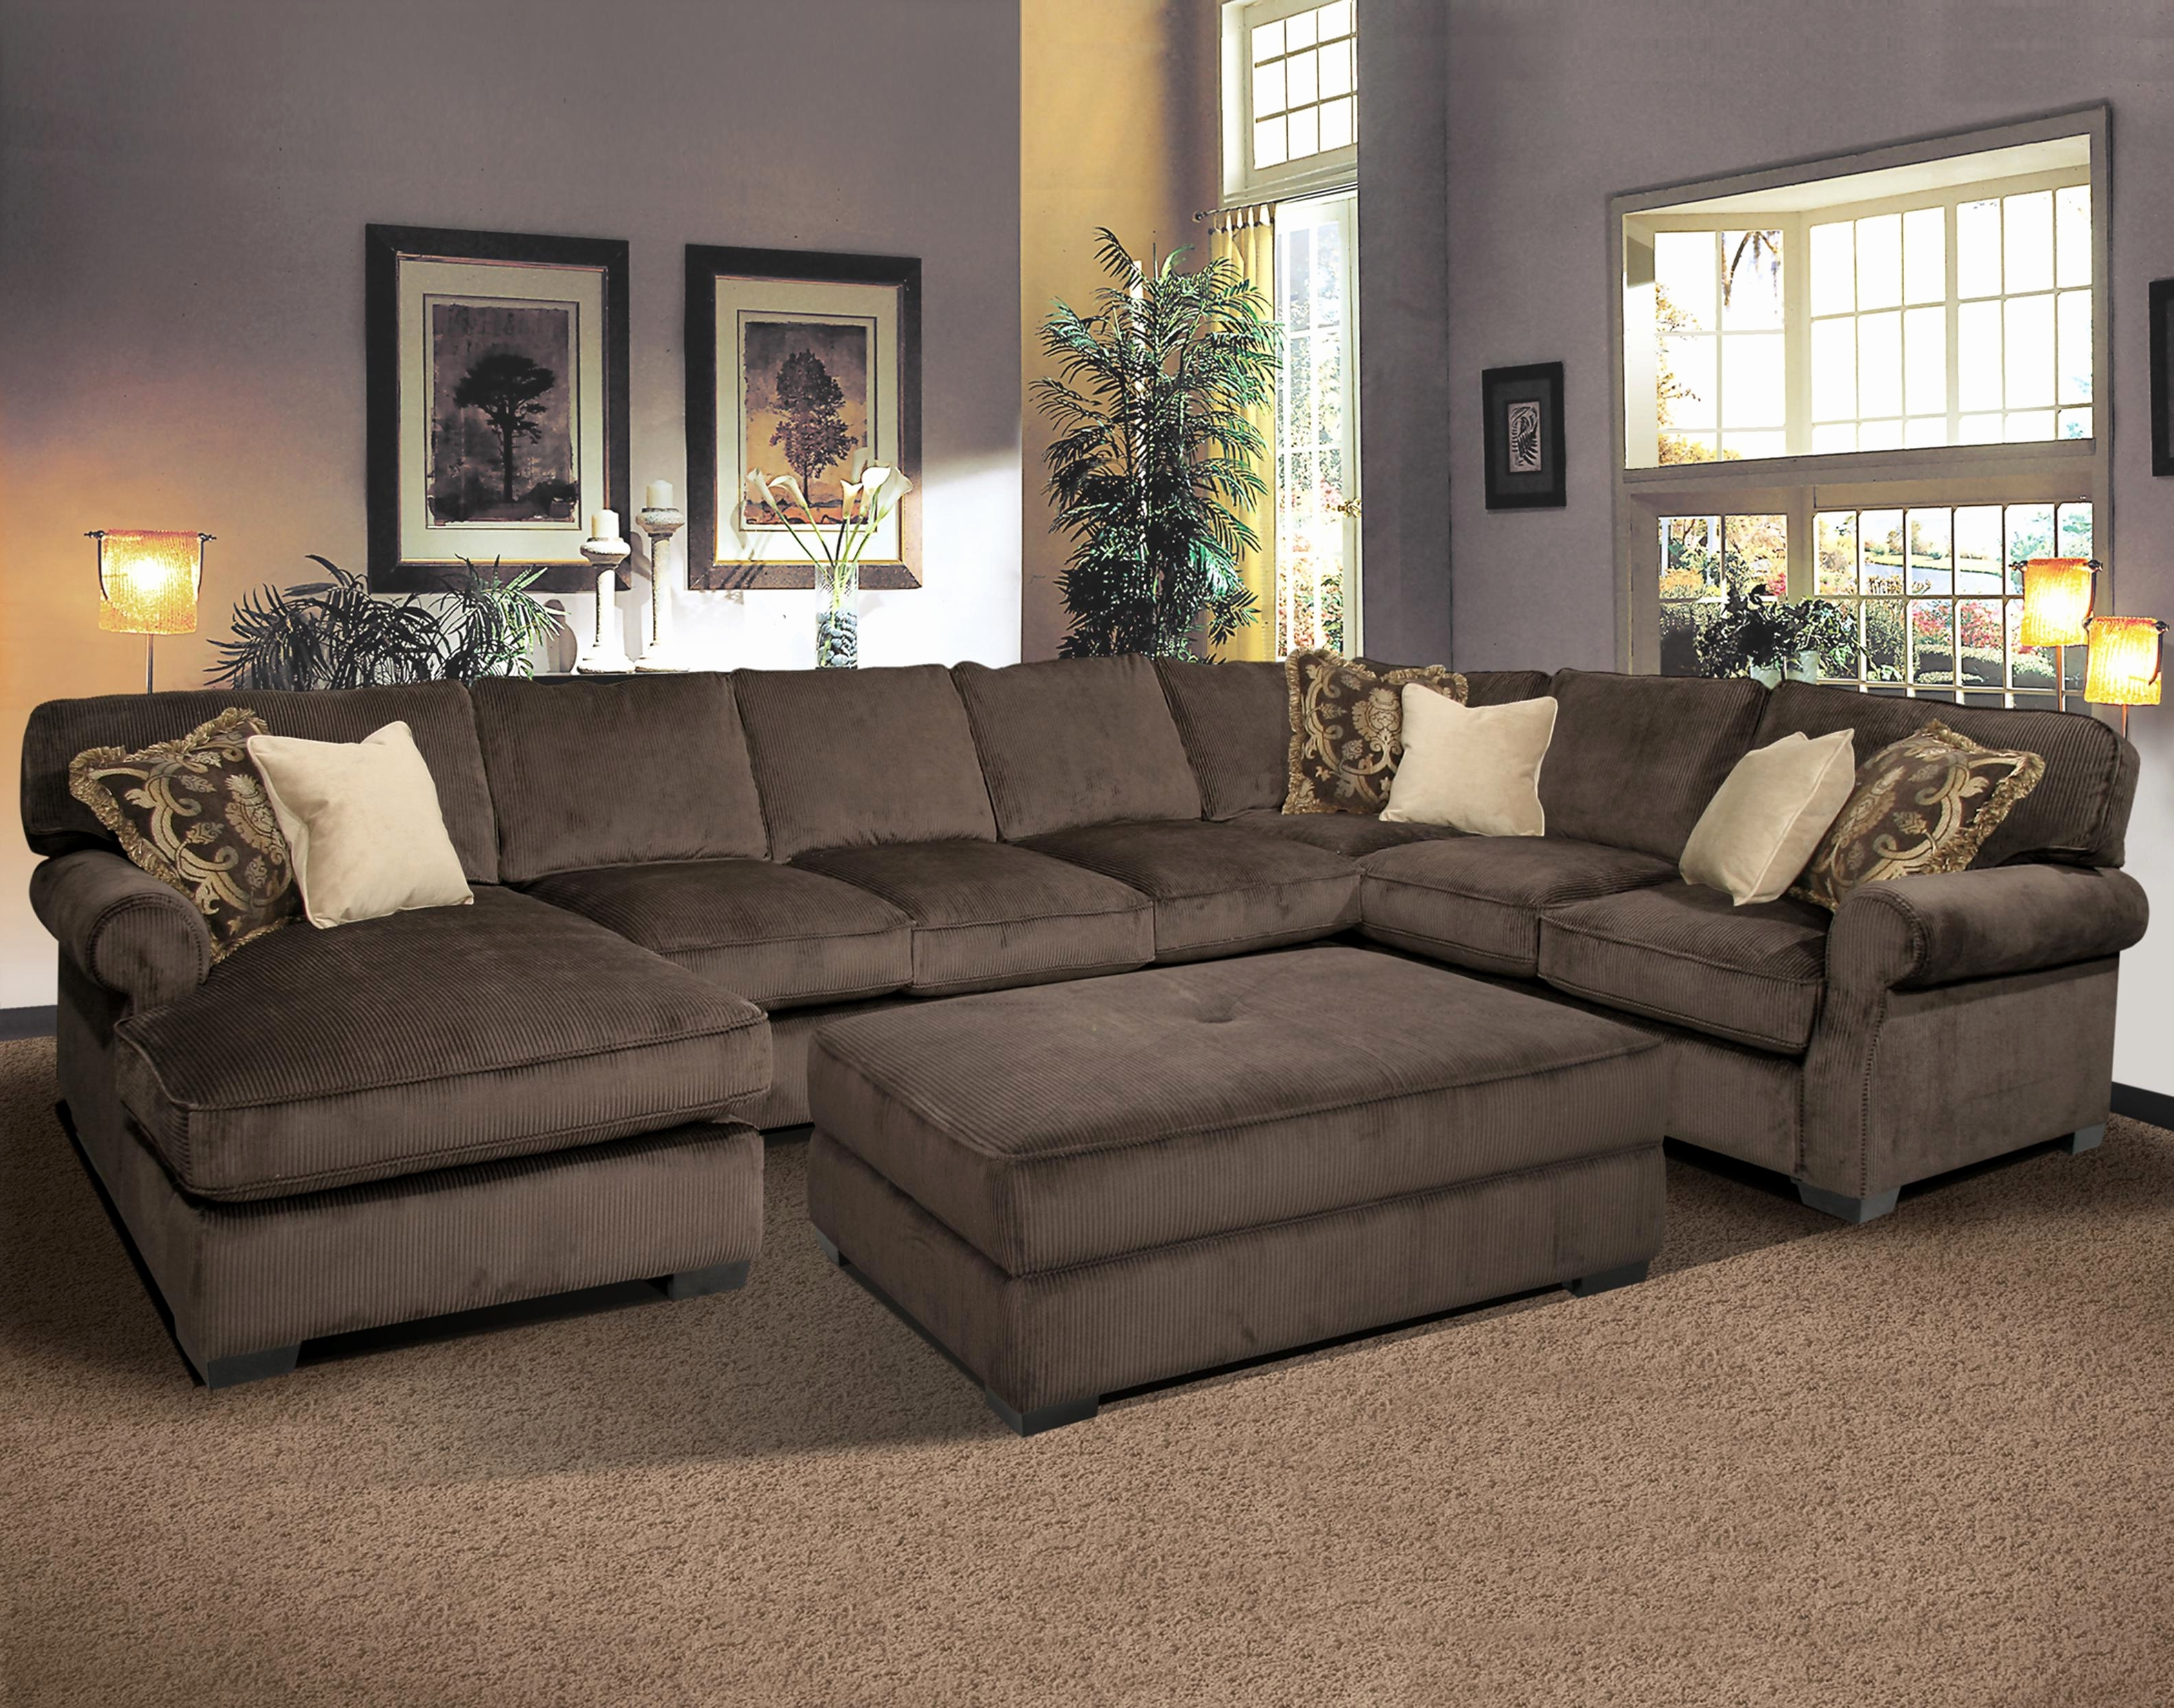 Sofas : Corner Sofa 2 Seater Sofa Quality Sofa Brands High Quality Intended For Preferred High Quality Sectional Sofas (View 7 of 15)